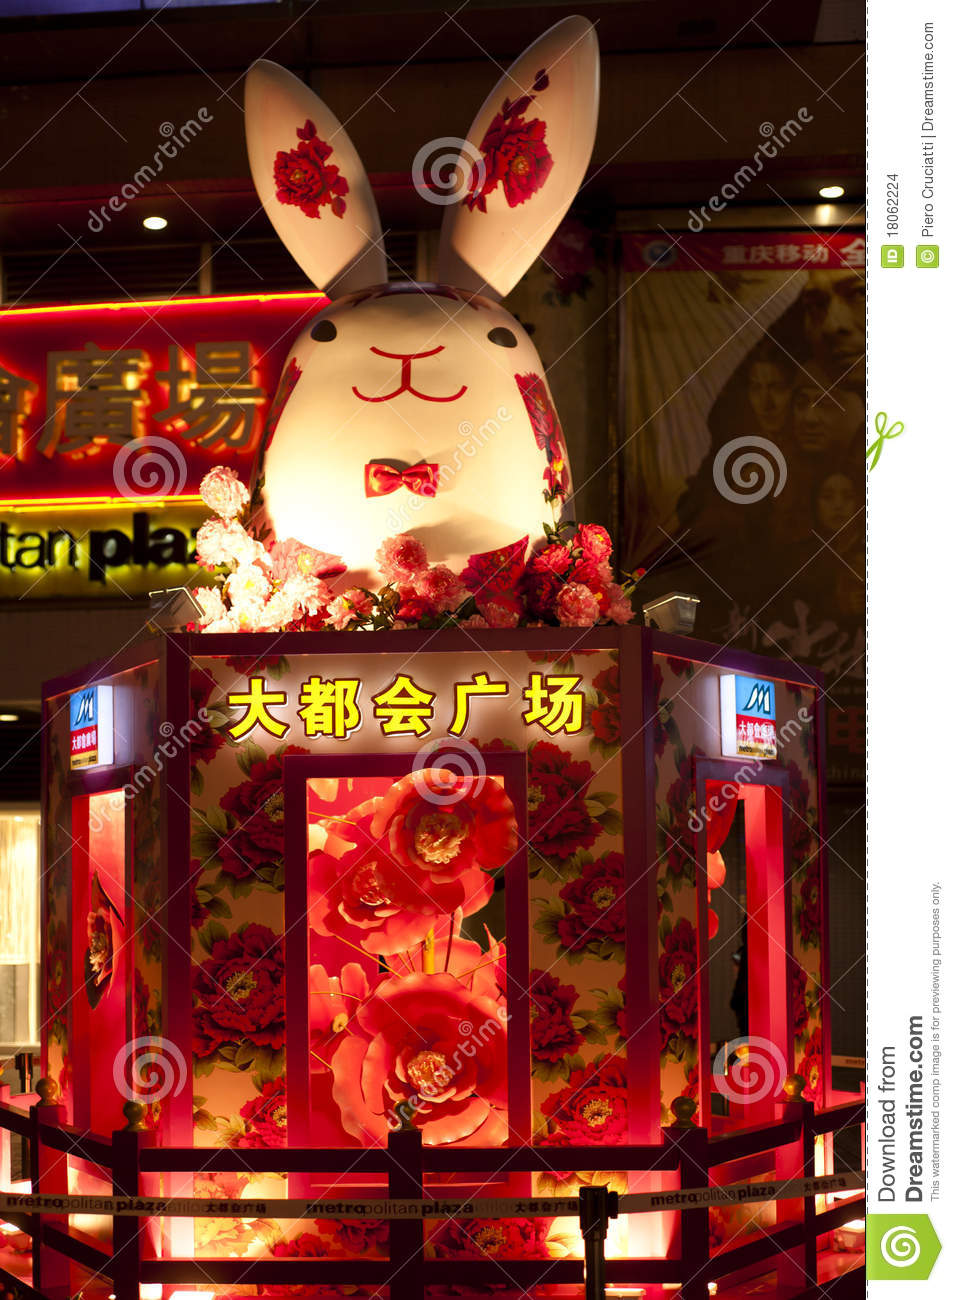 China: Spring festival decorations